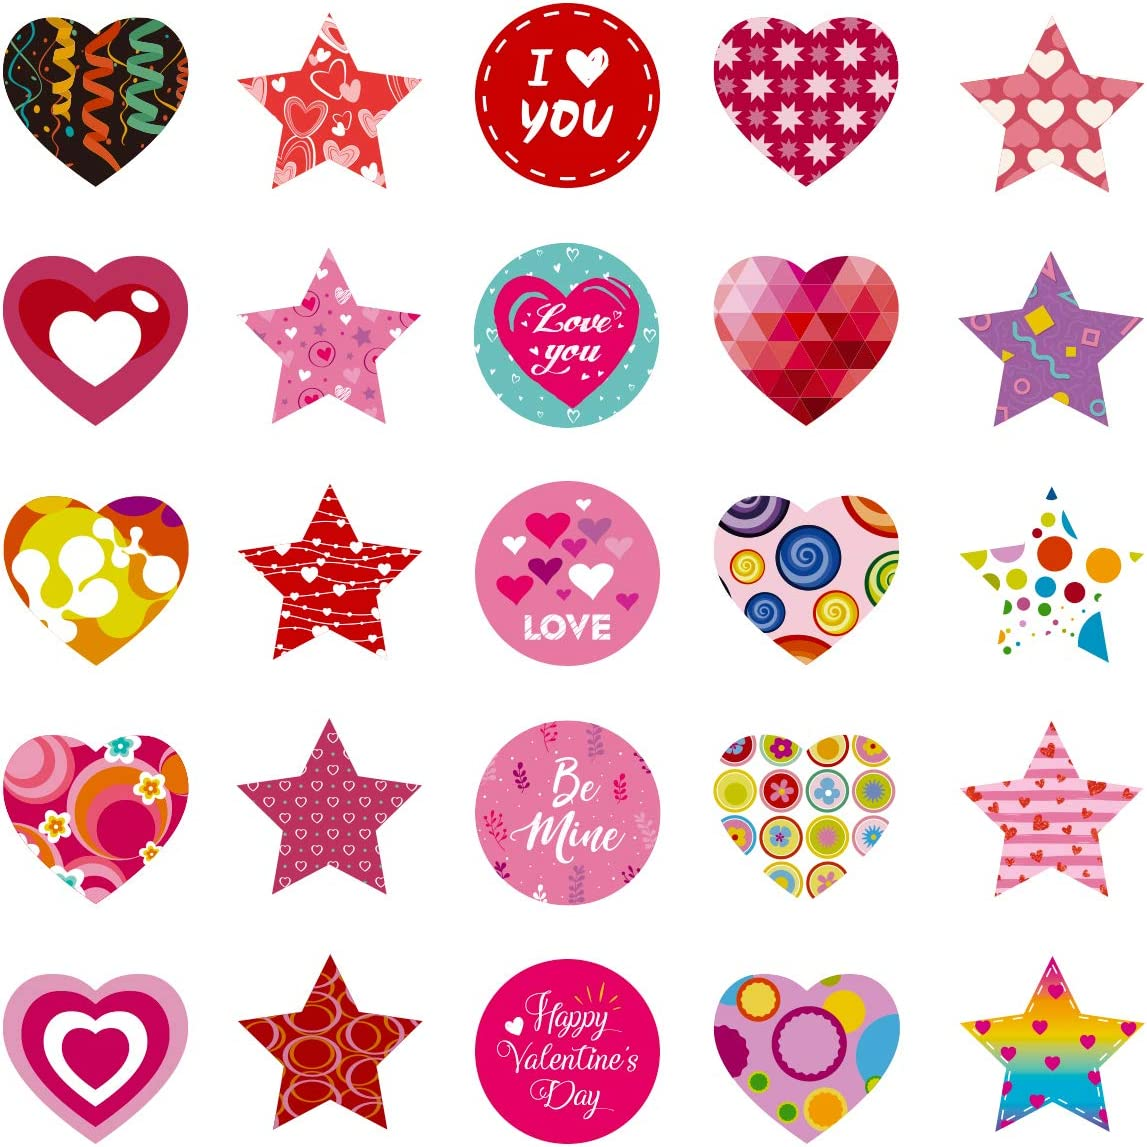 Party Favors Gifts Decorations Supplies,Wedding Party Accessories DmHirmg Valentines Day Stickers,Valentines Heart Roll Stickers Labels for Valentines Day Decoration